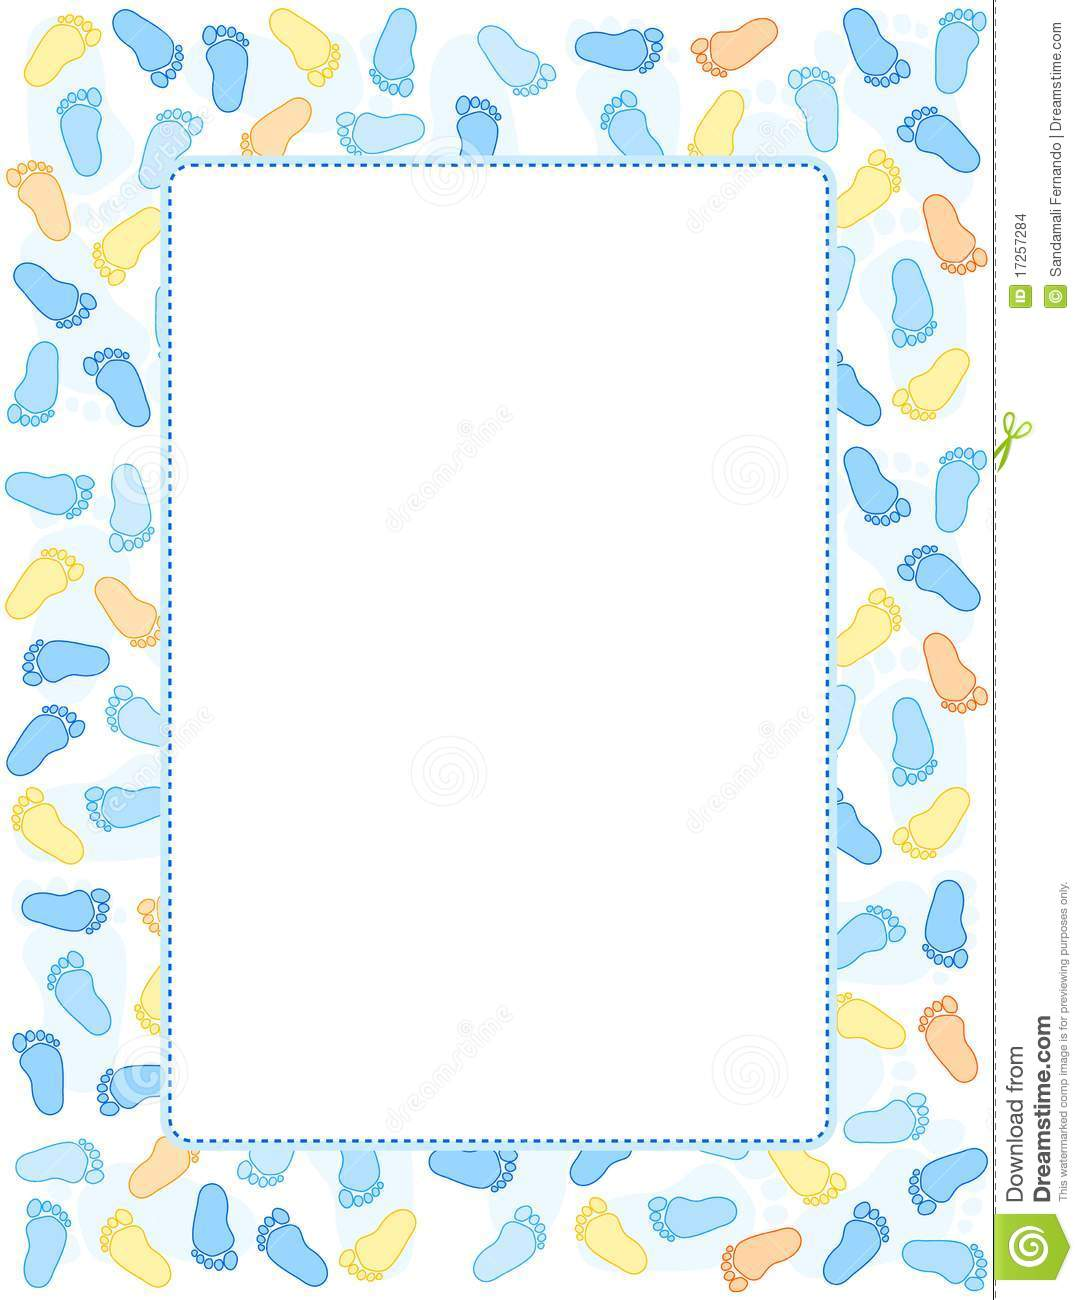 baby footprint stock images image 17257284 baby footprint clipart border free baby footprints clipart png